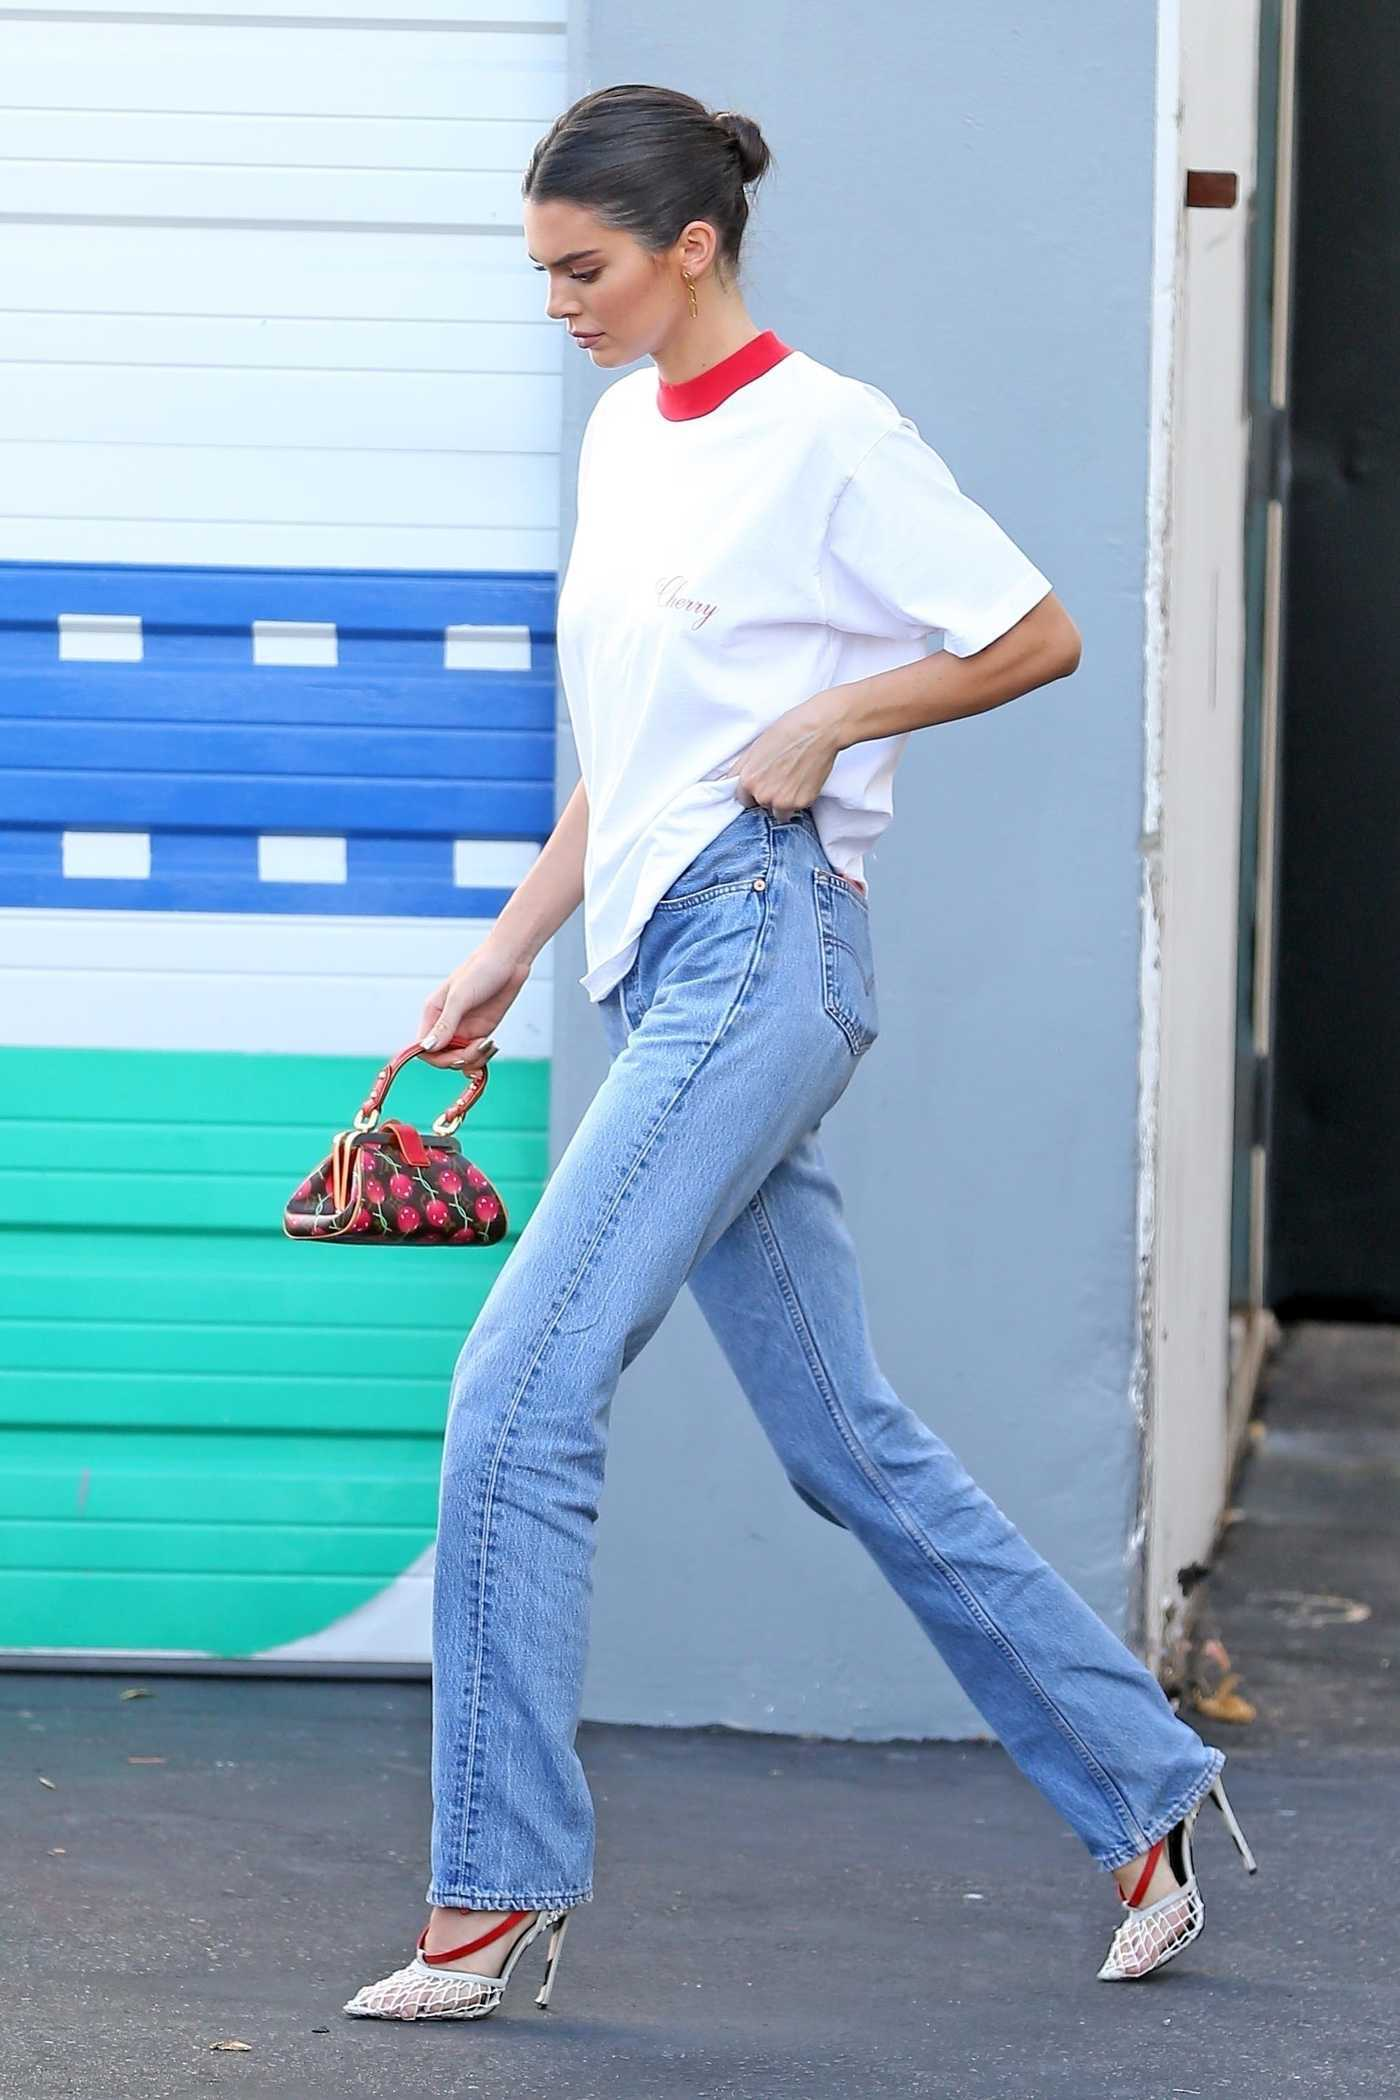 Kendall Jenner in a White T-Shirt Leaves the Studio in Los Angeles 10/08/2018